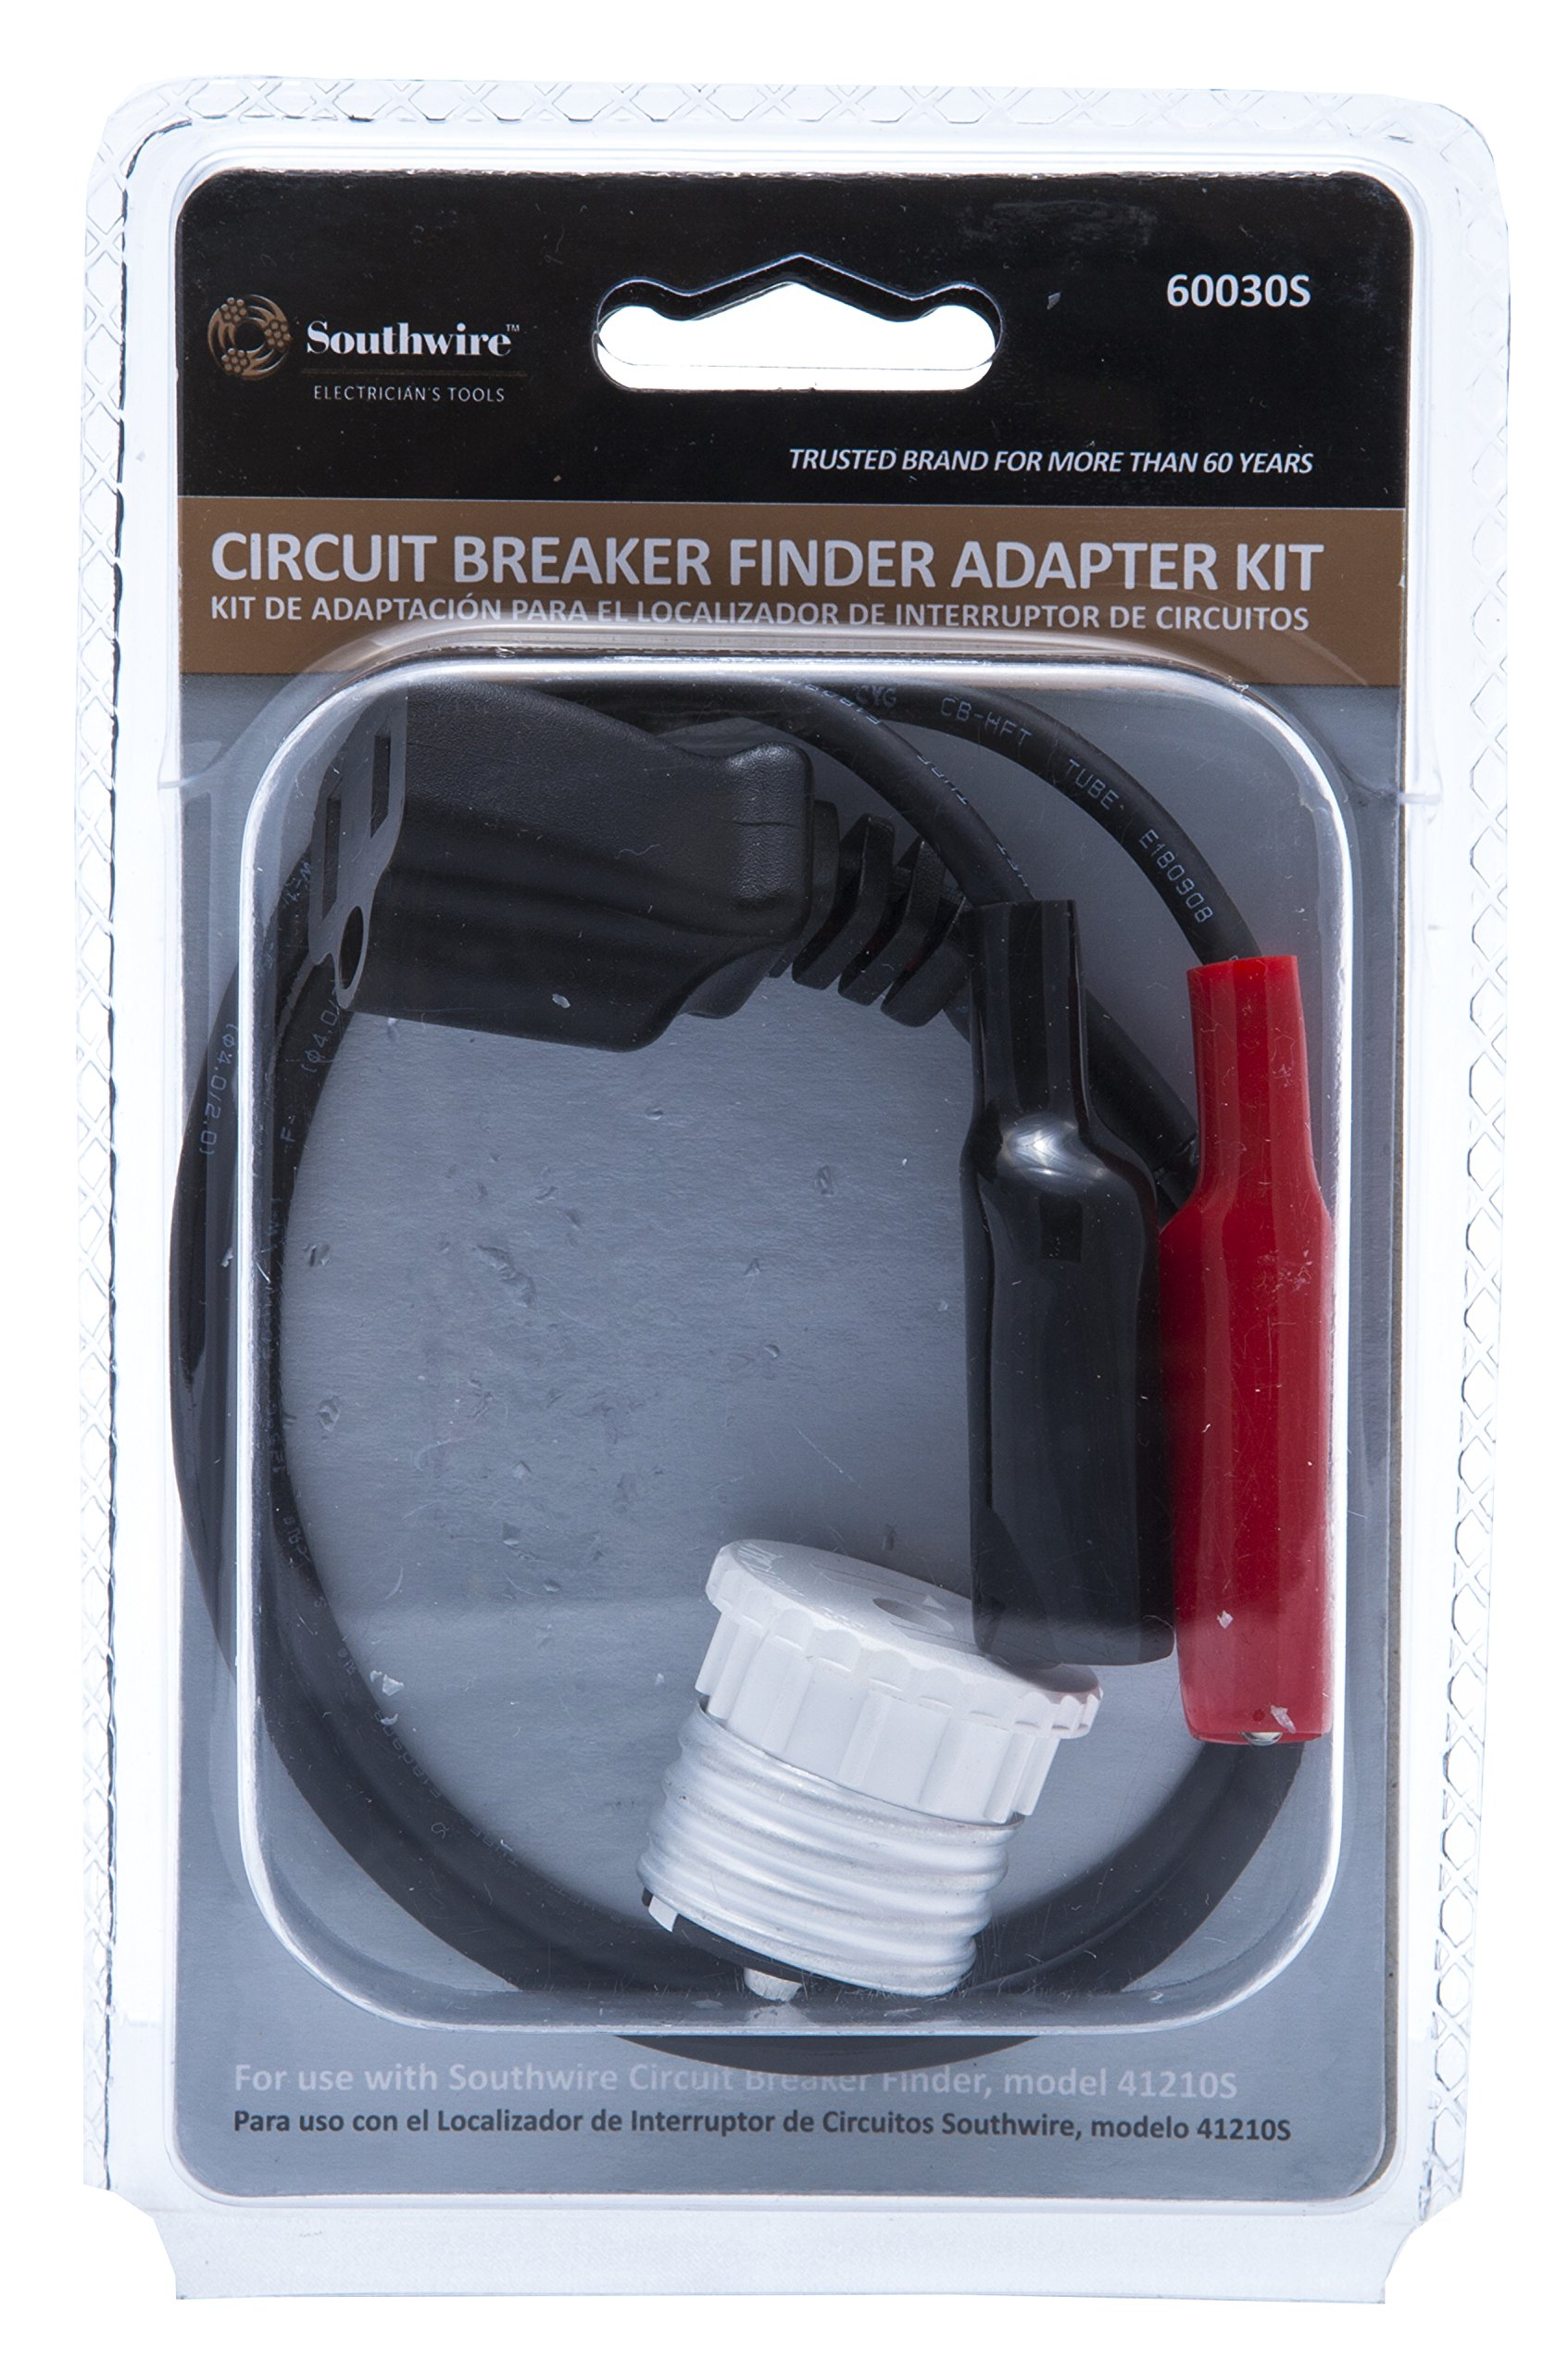 Southwire Tools & Equipment 60030S Circuit Breaker Finder Adapter/Accessory Kit; Includes Alligator Clips and Light Bulb Circuit Adapter (Compatible with Southwire's 41210S Circuit Breaker Finder) by Southwire